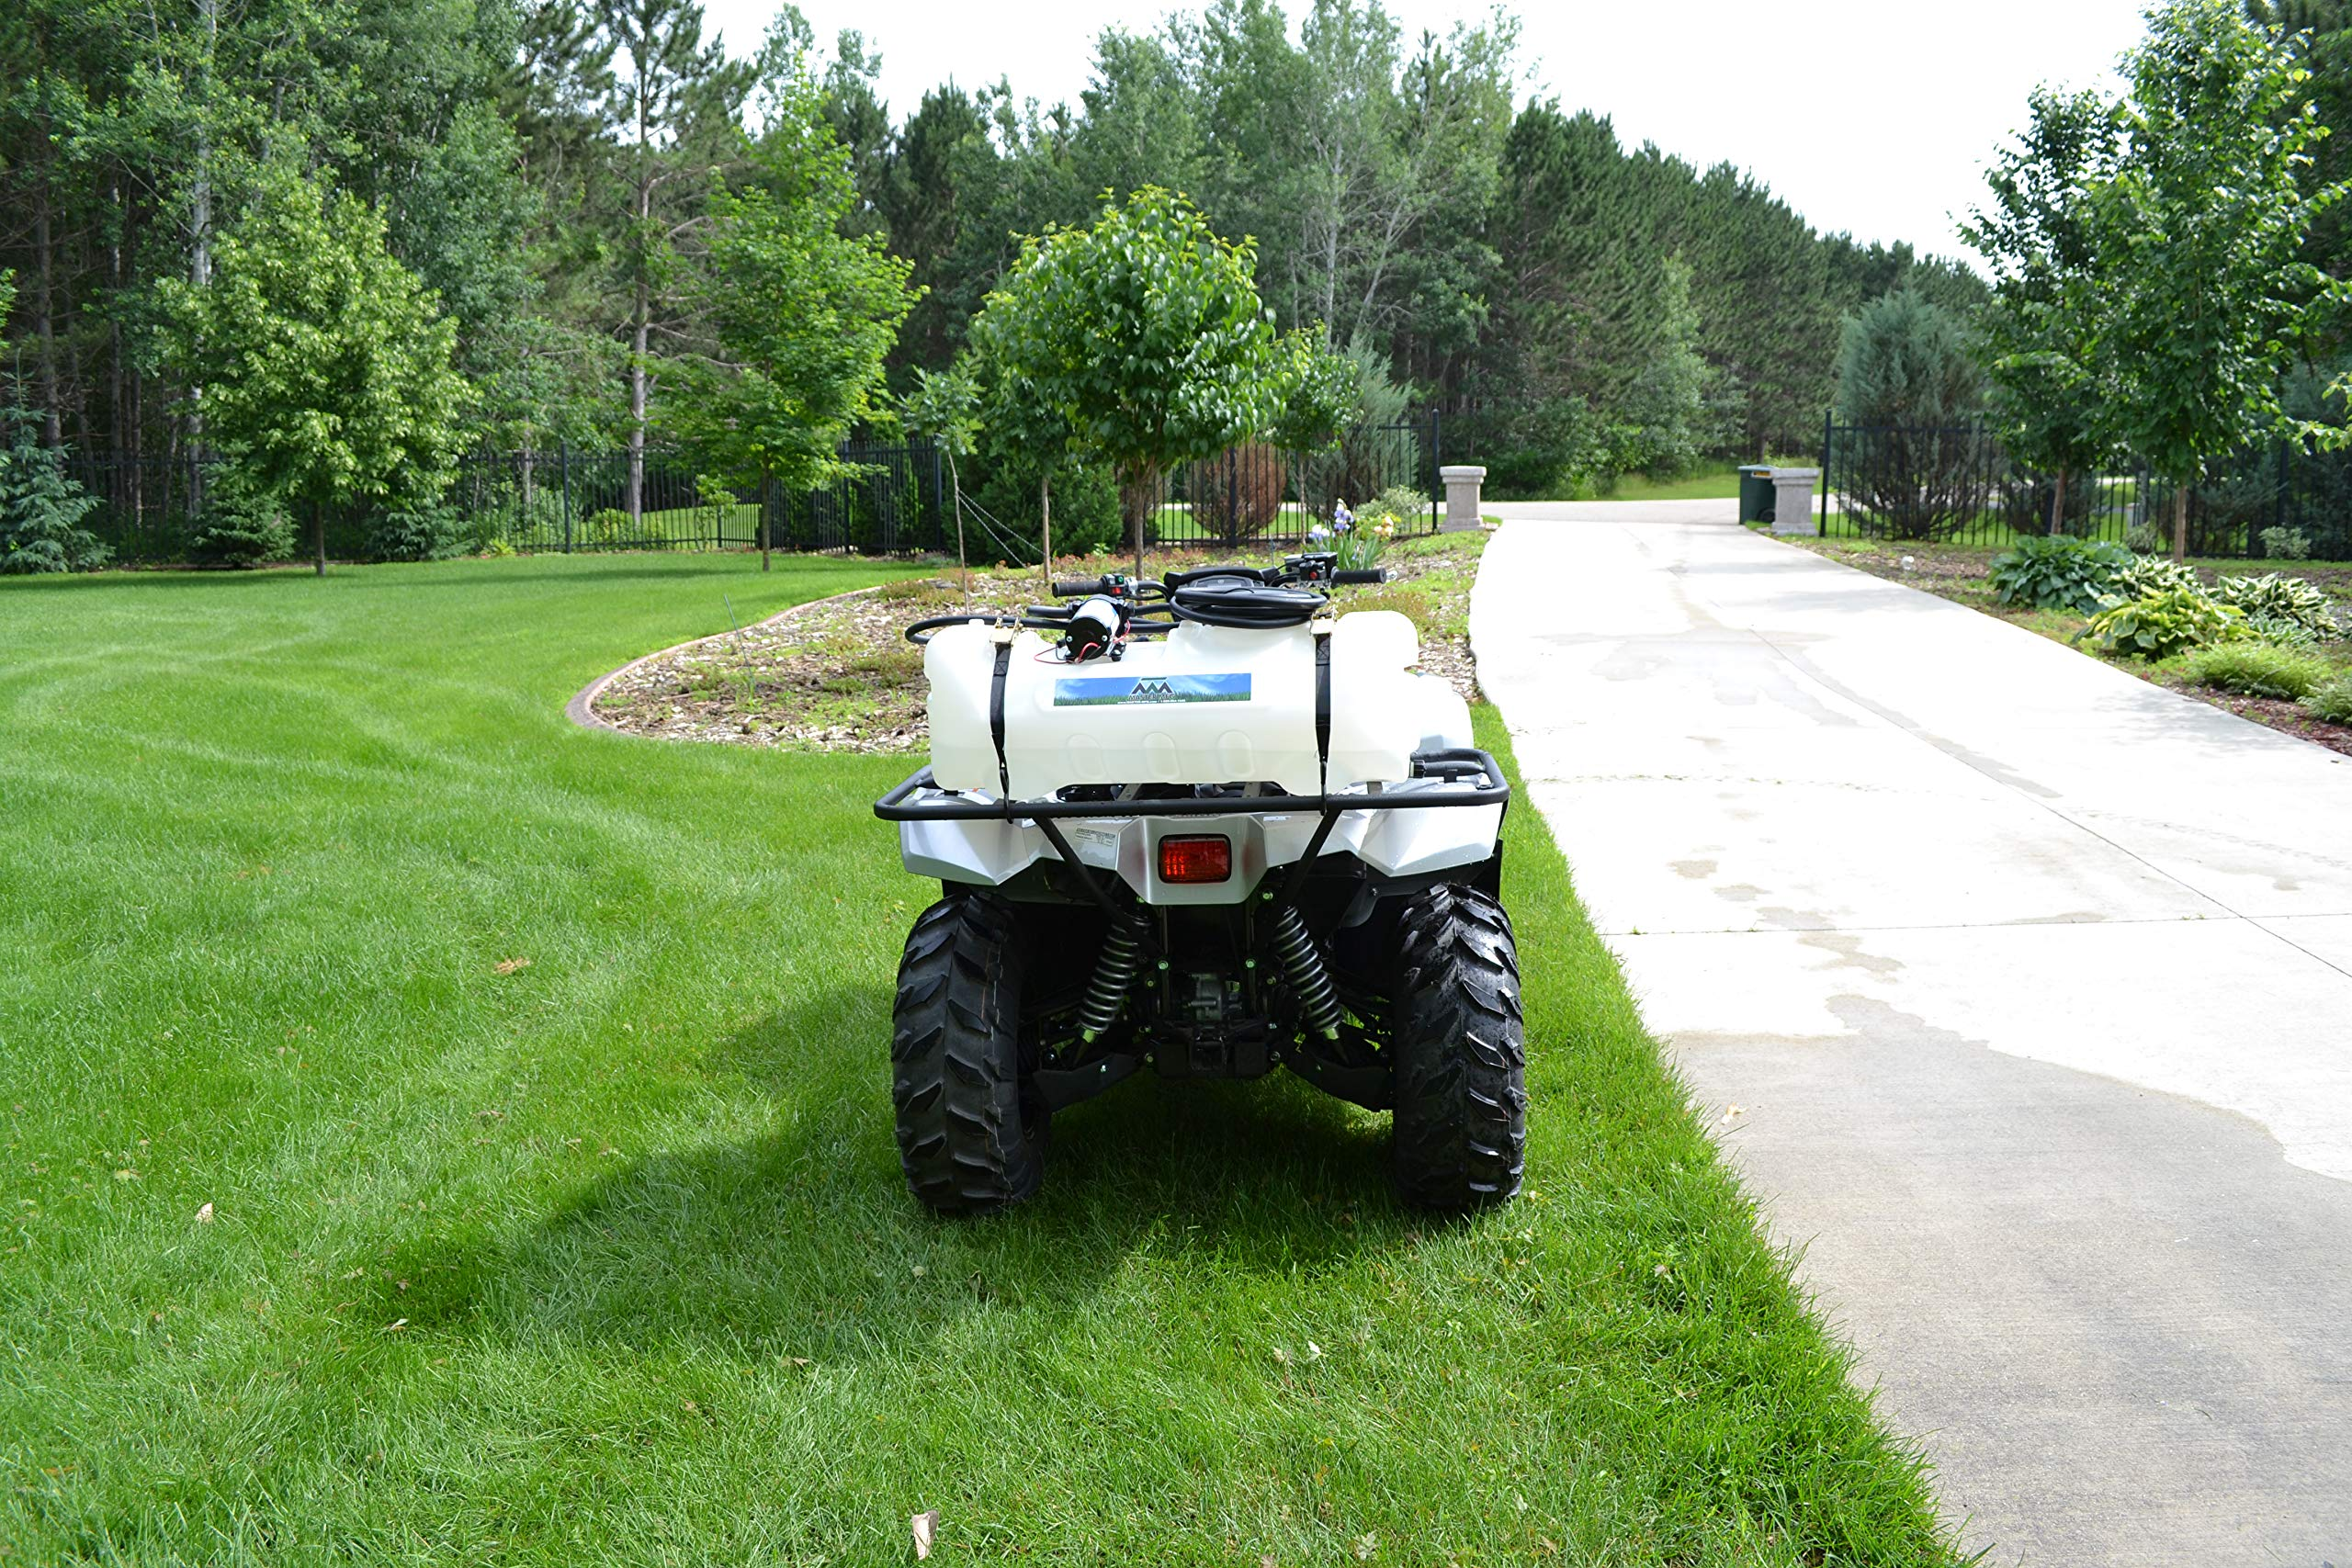 Master Manufacturing SSO-01-015A-MM 15 Gallon Spot Sprayer-Everflo 2.2 GPM by Master Manufacturing (Image #2)